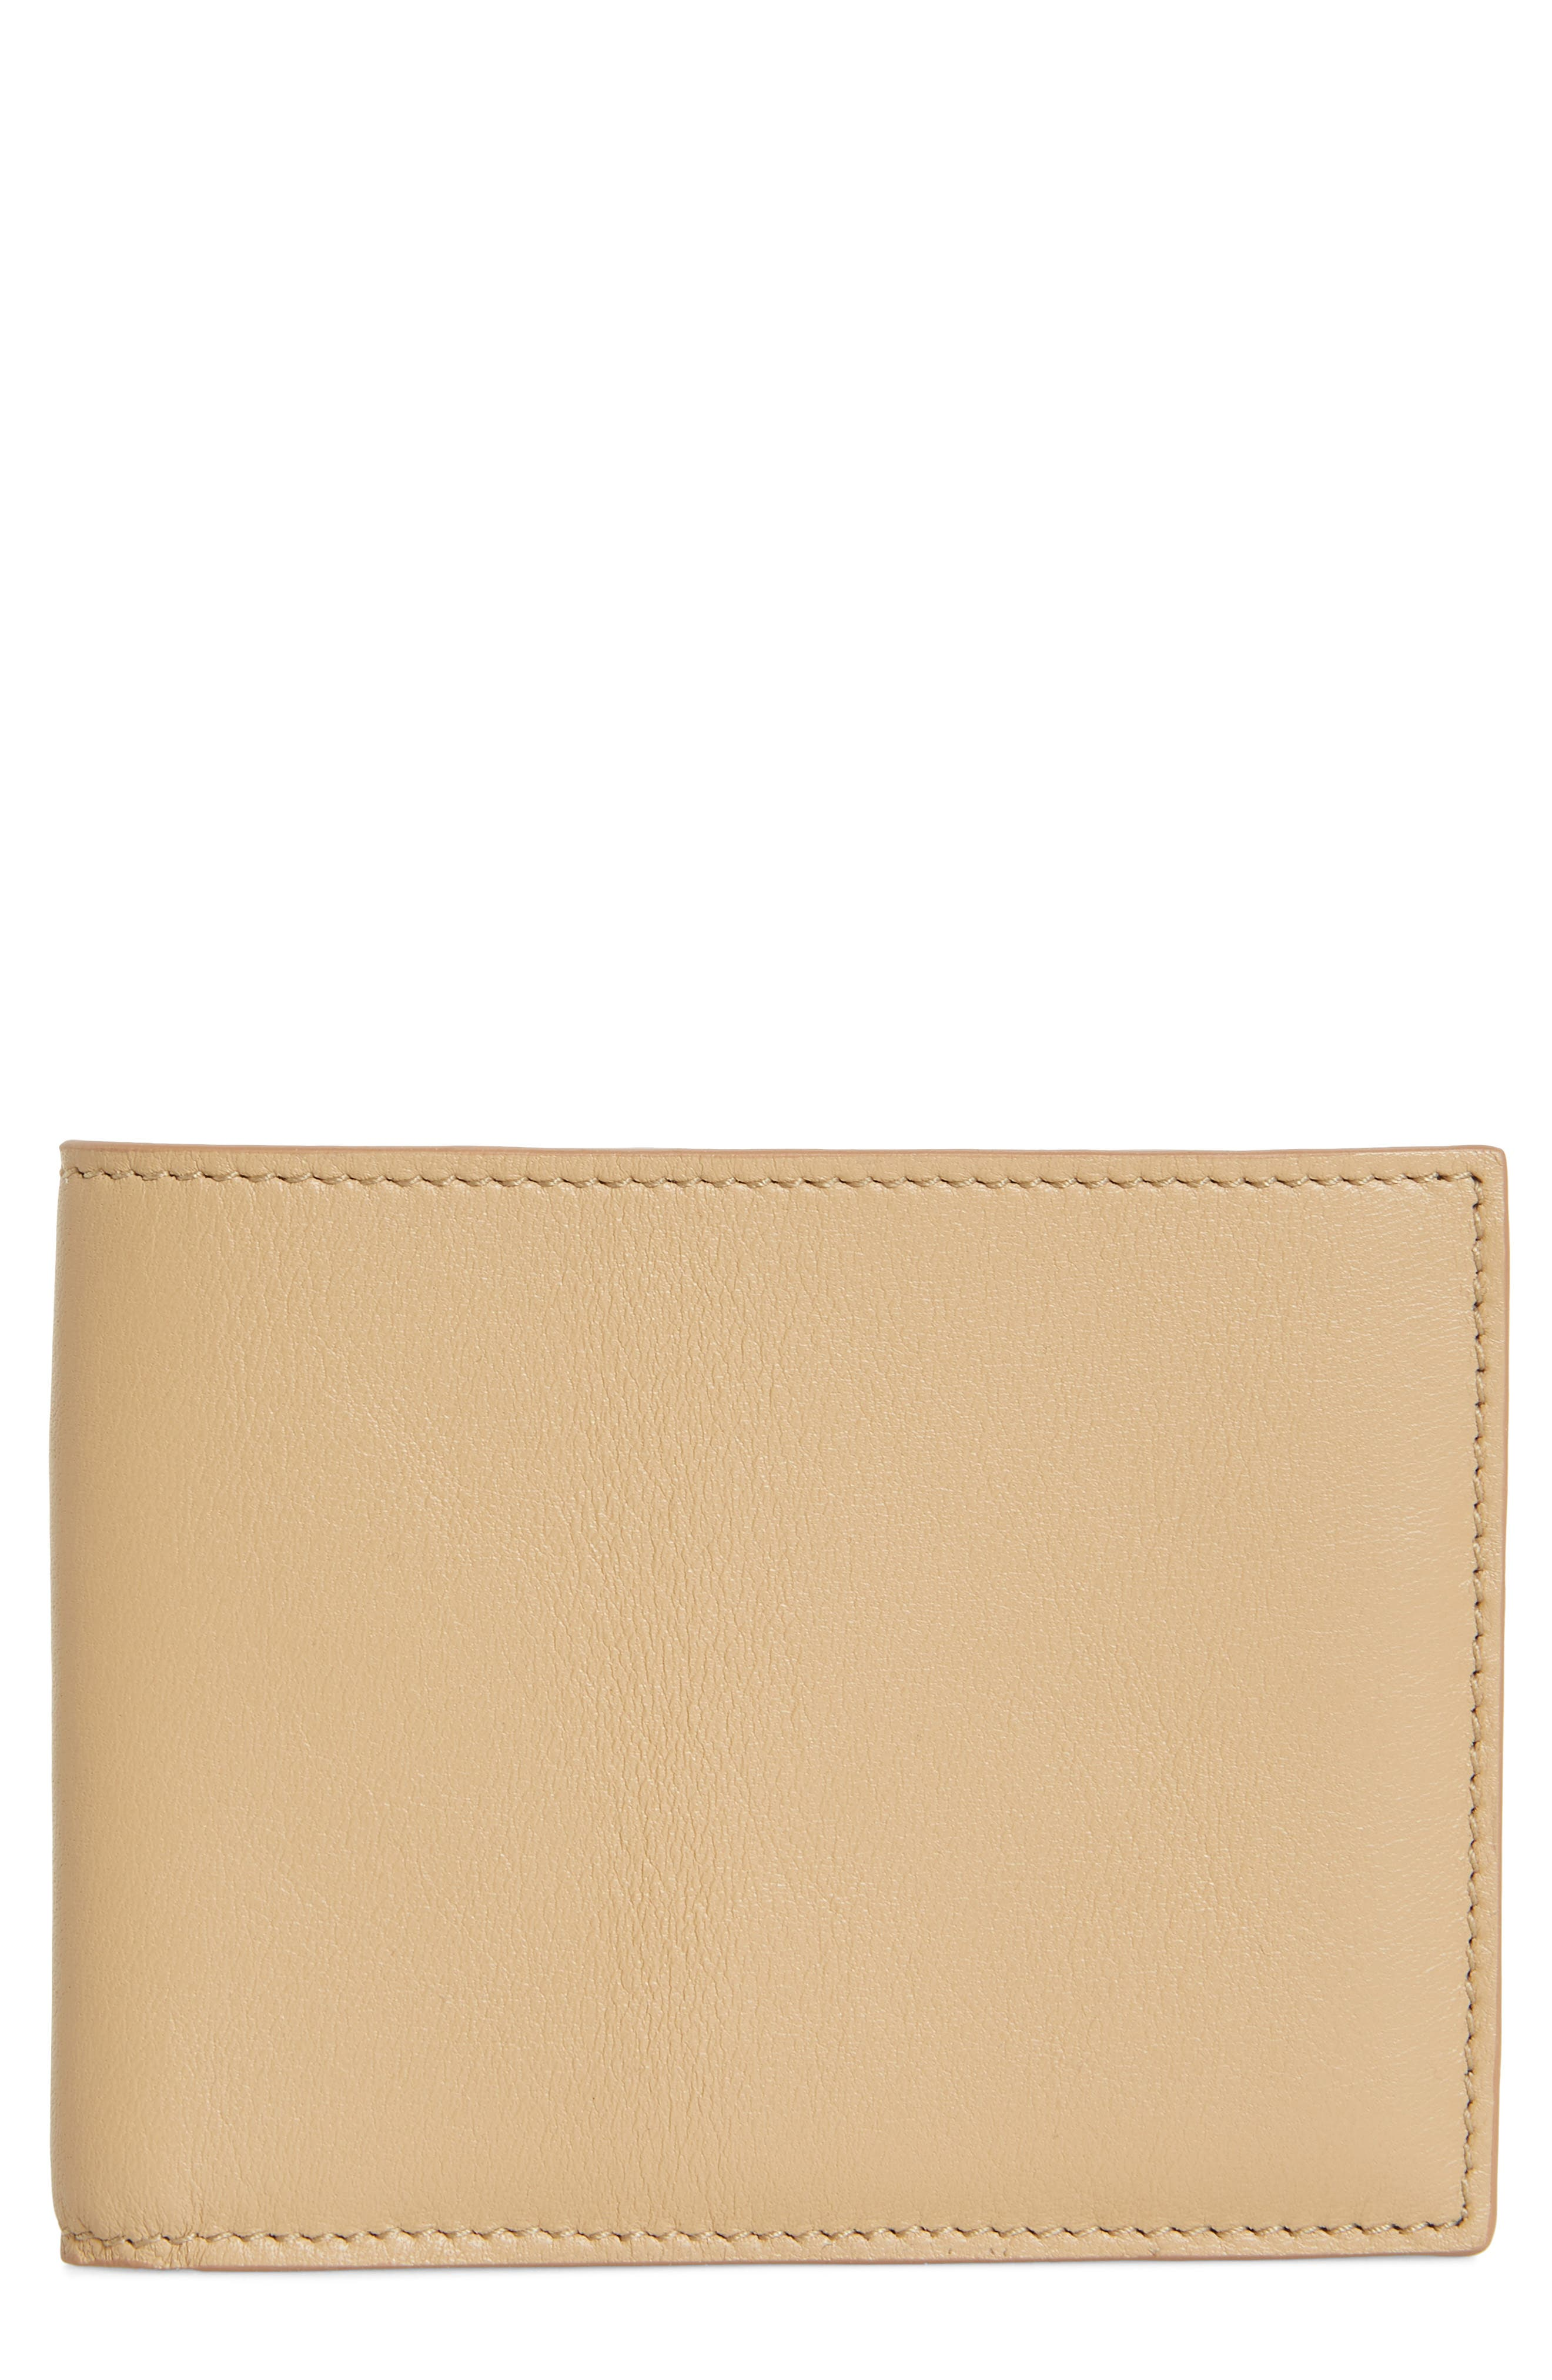 COMMON PROJECTS, Bifold Nappa Leather Wallet, Main thumbnail 1, color, TAN